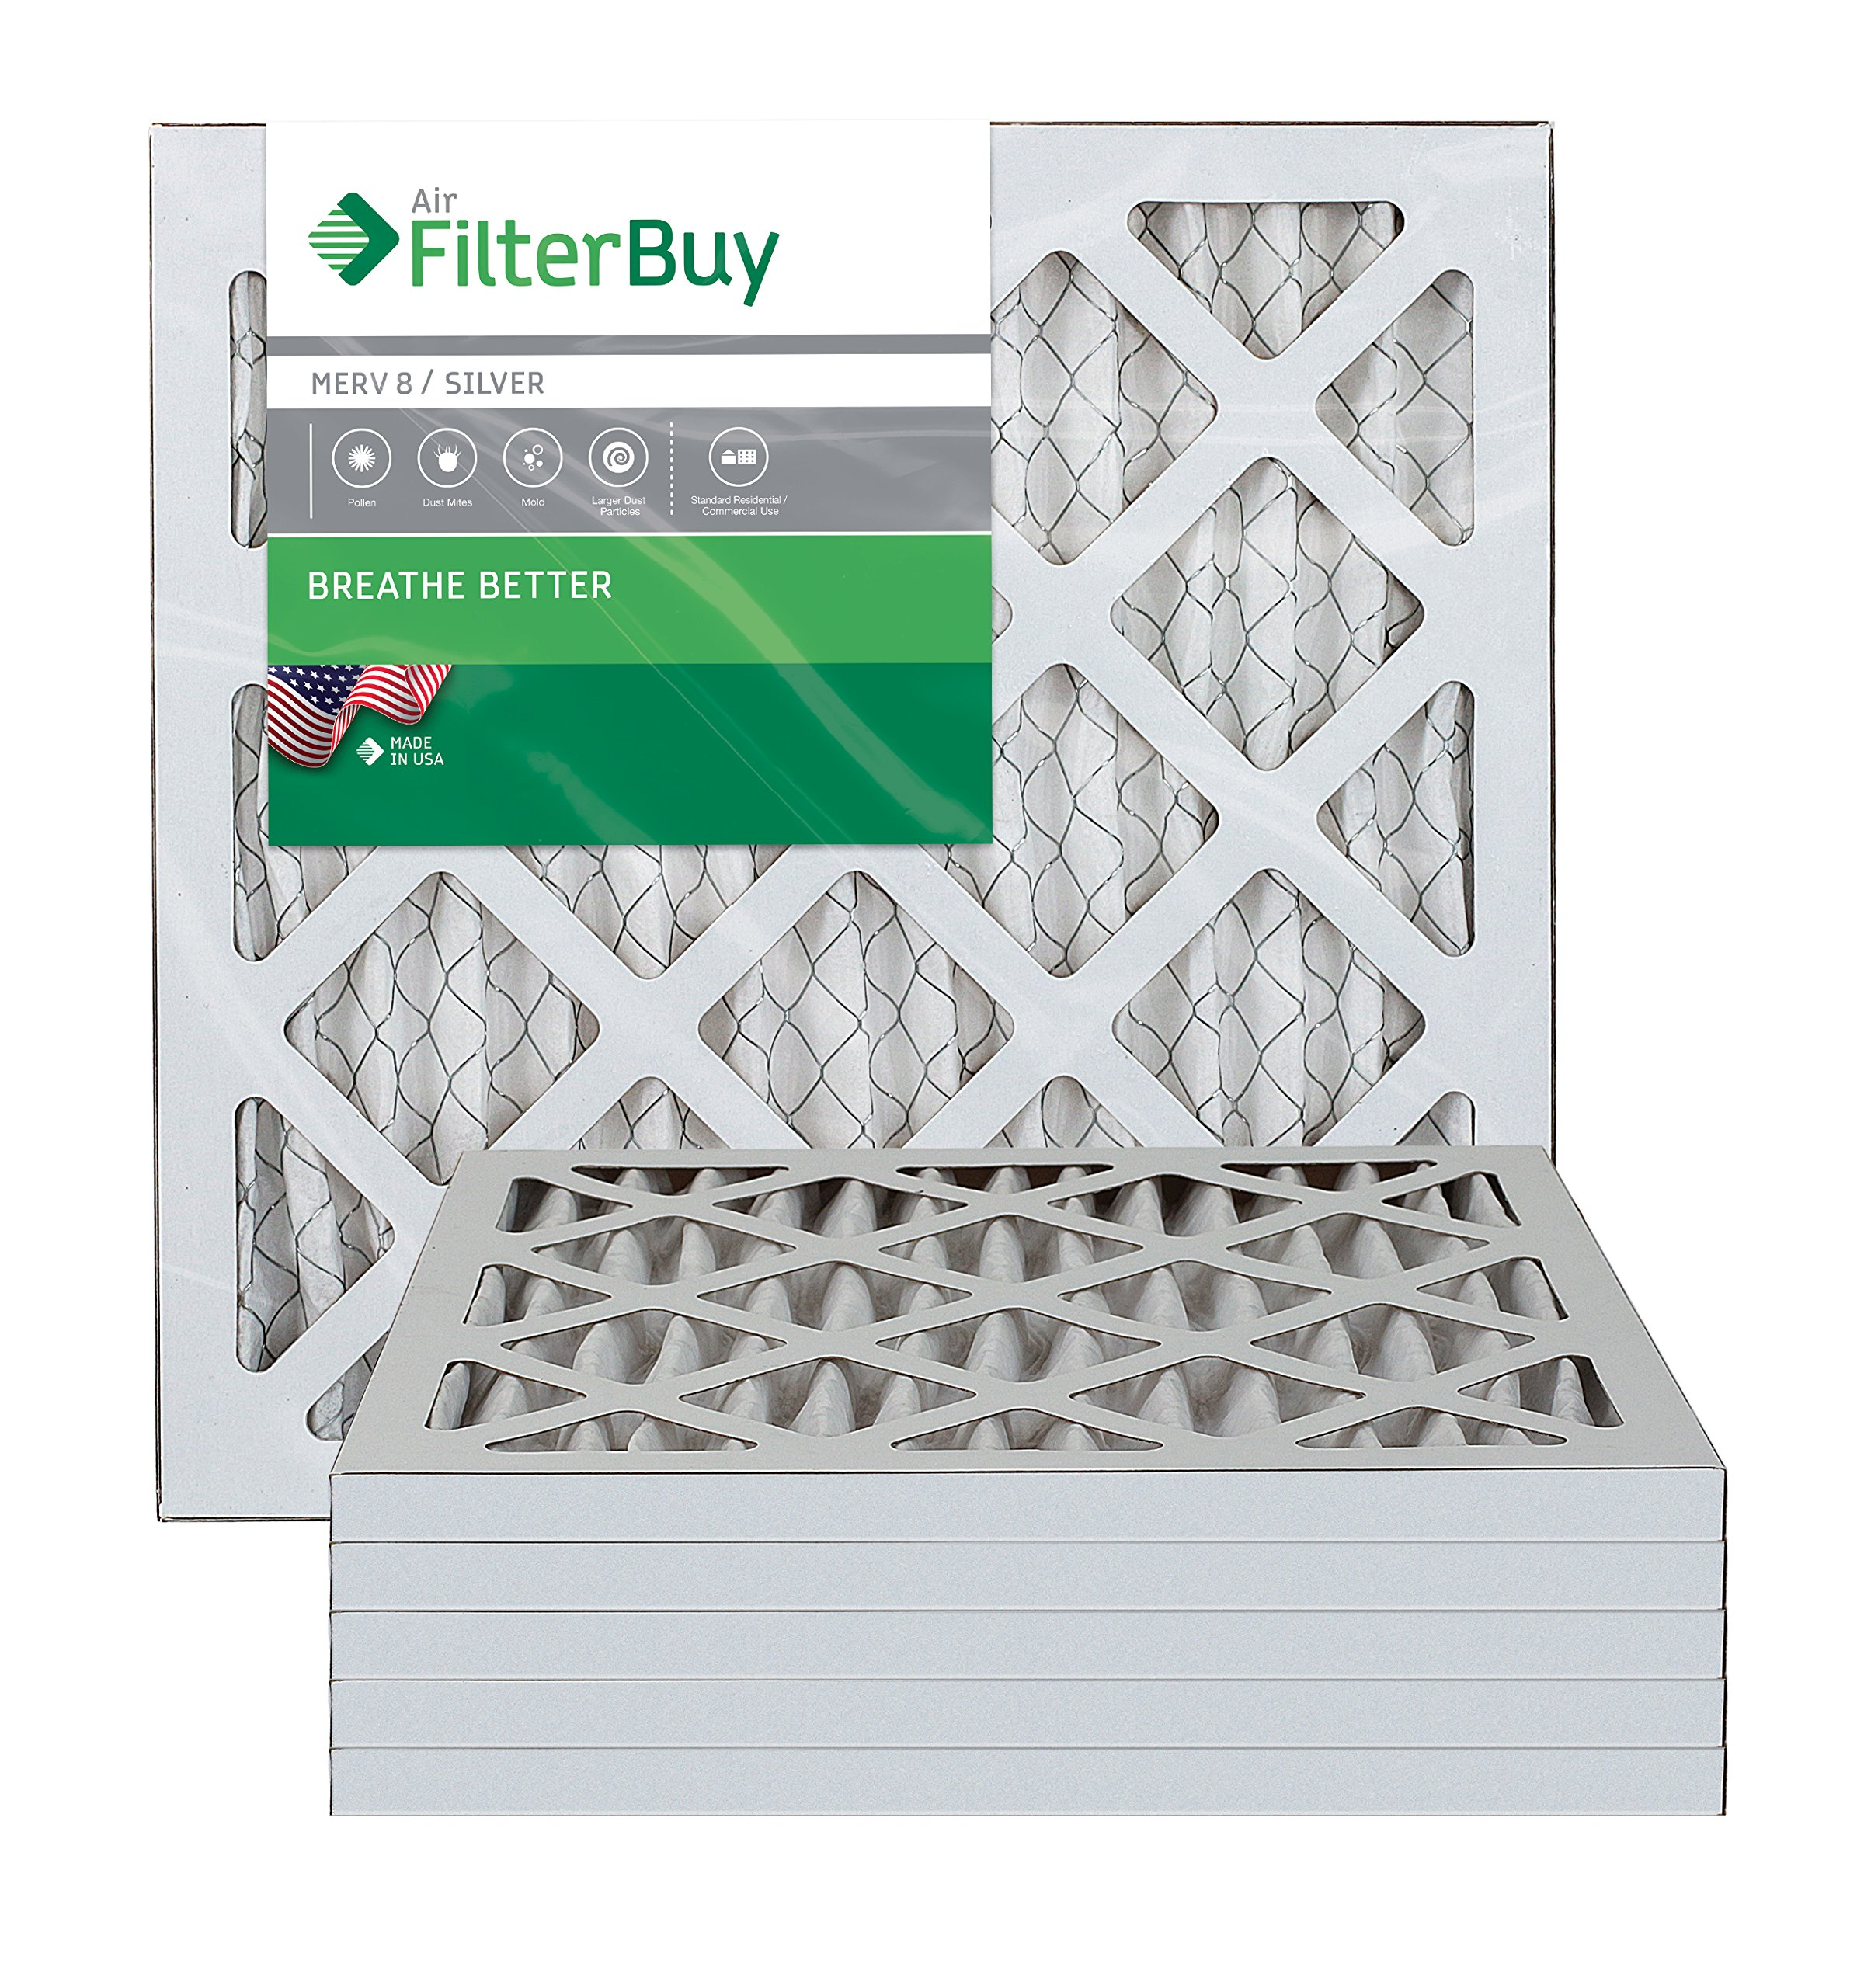 FilterBuy 12x12x1 MERV 8 Pleated AC Furnace Air Filter, (Pack of 6 Filters), 12x12x1 - Silver by FilterBuy